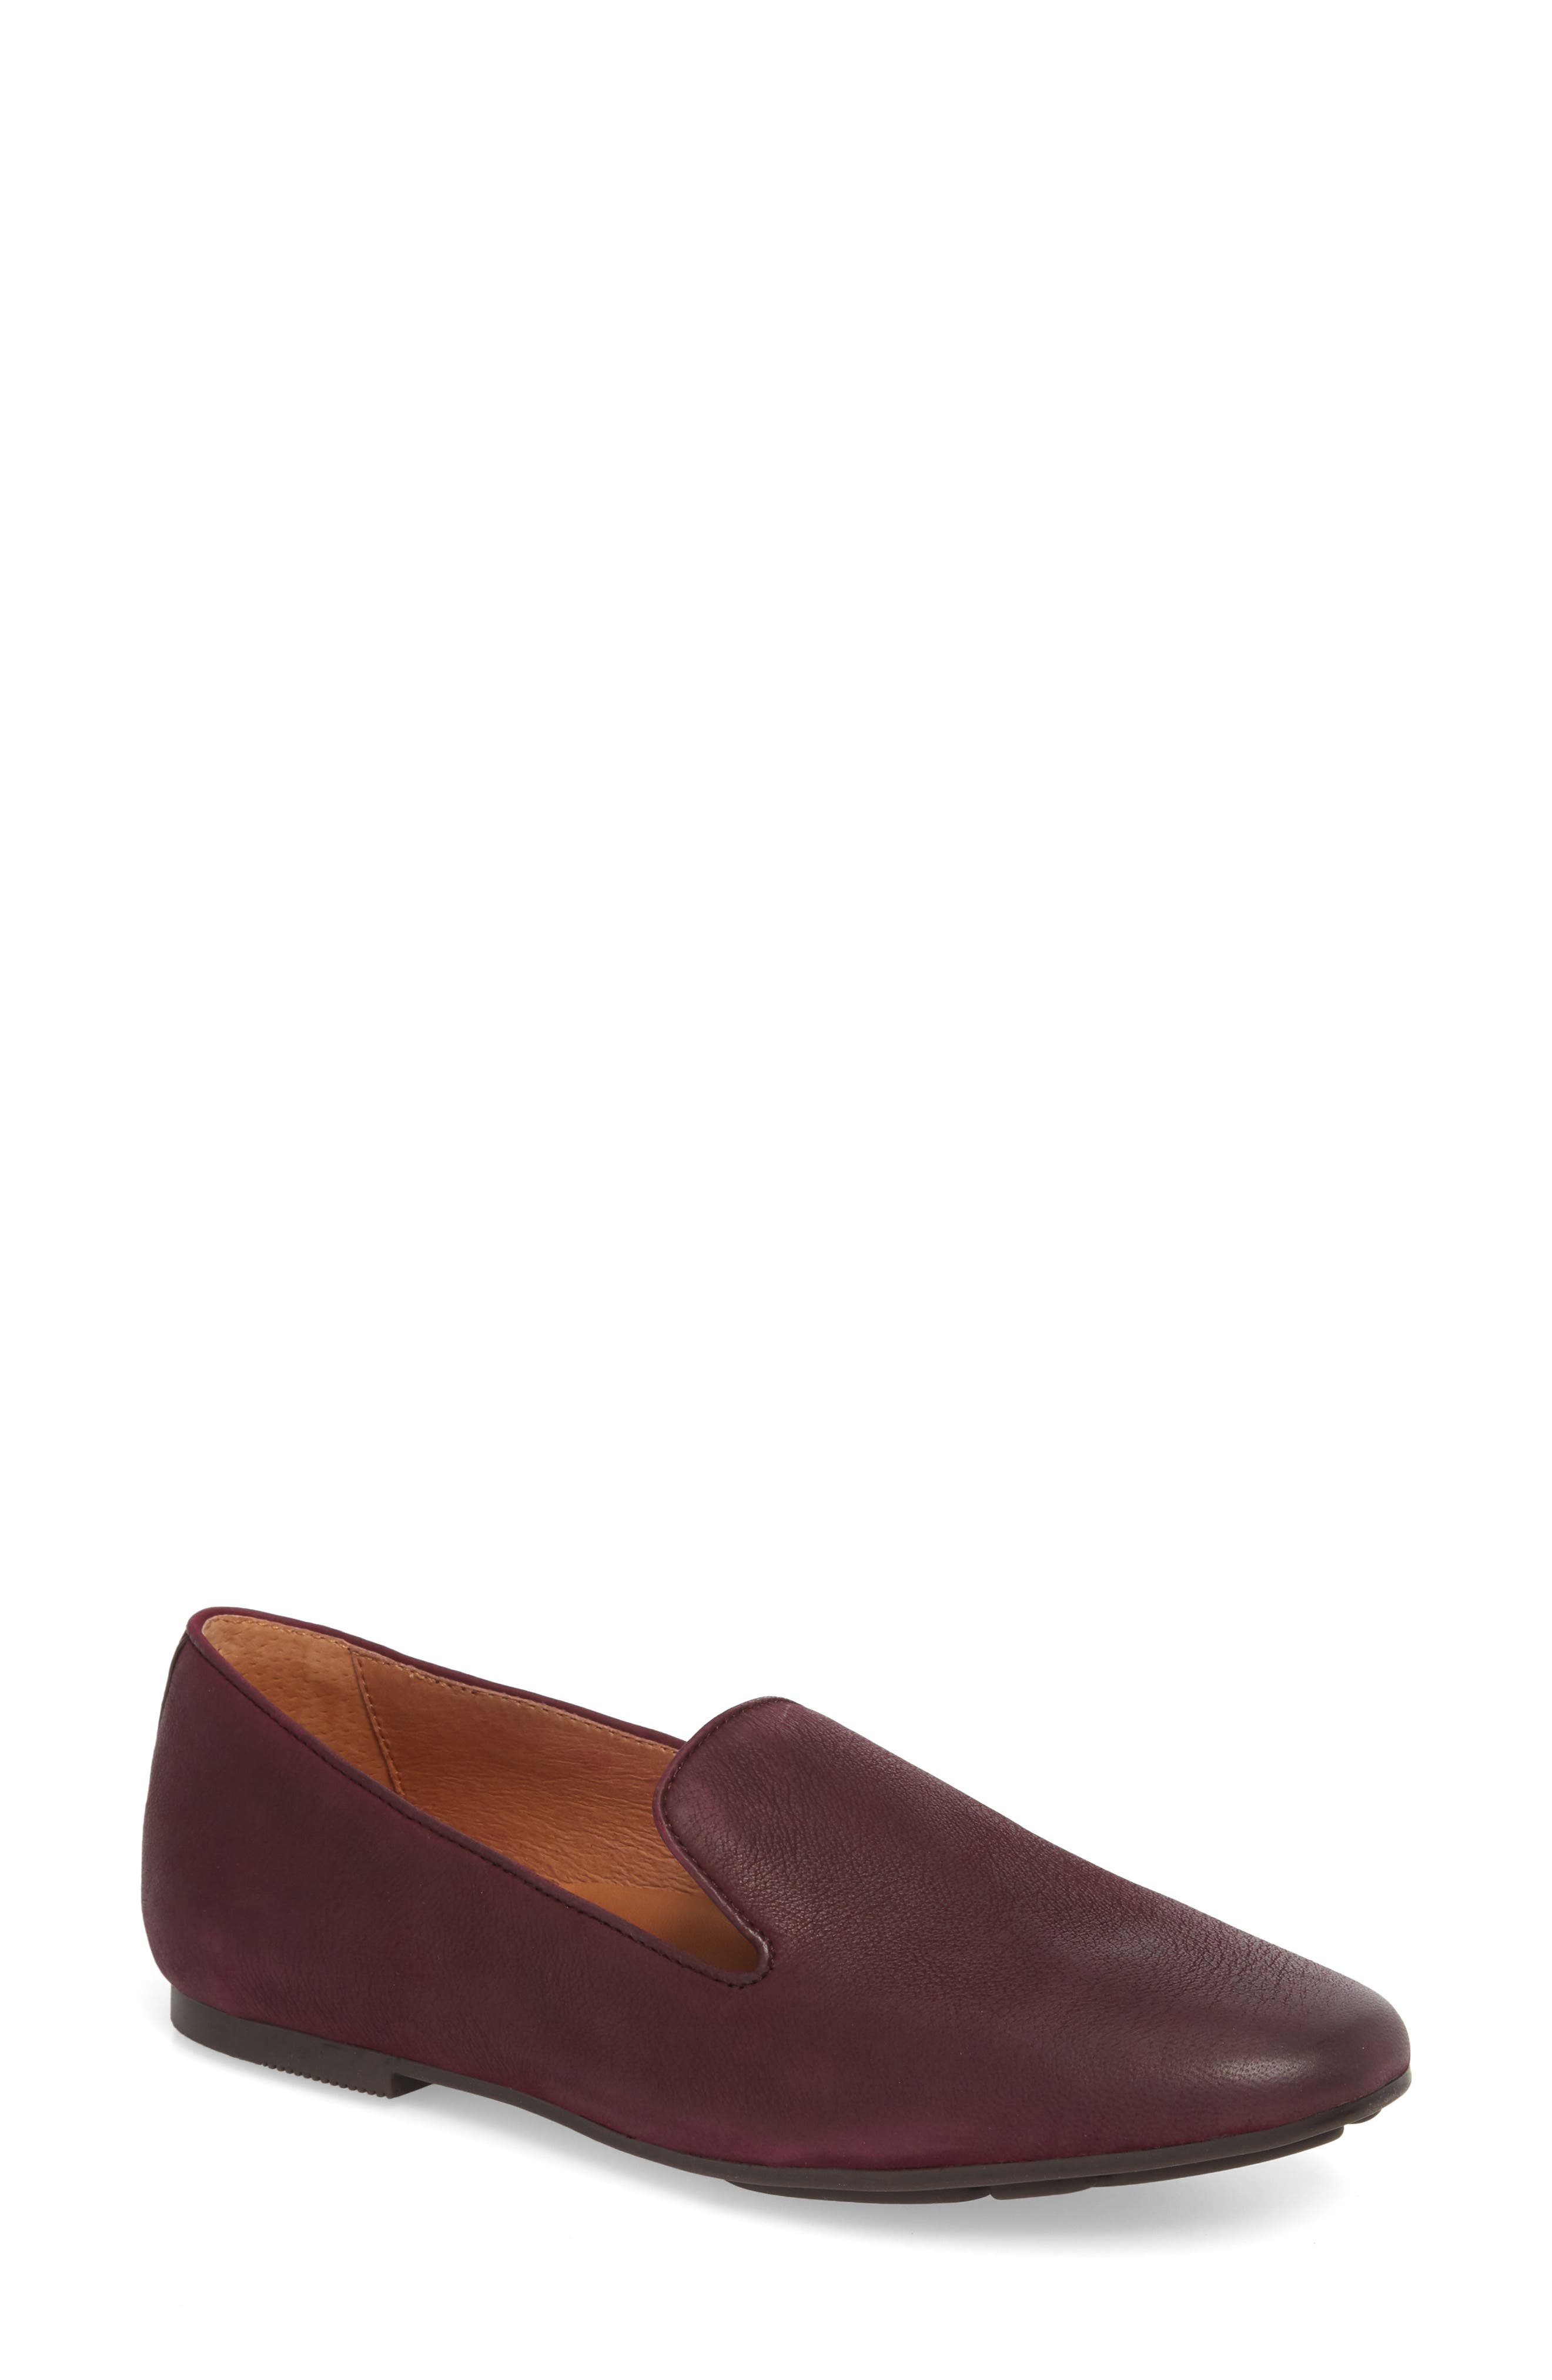 Gentle Souls By Kenneth Cole Eugene Flat, Red